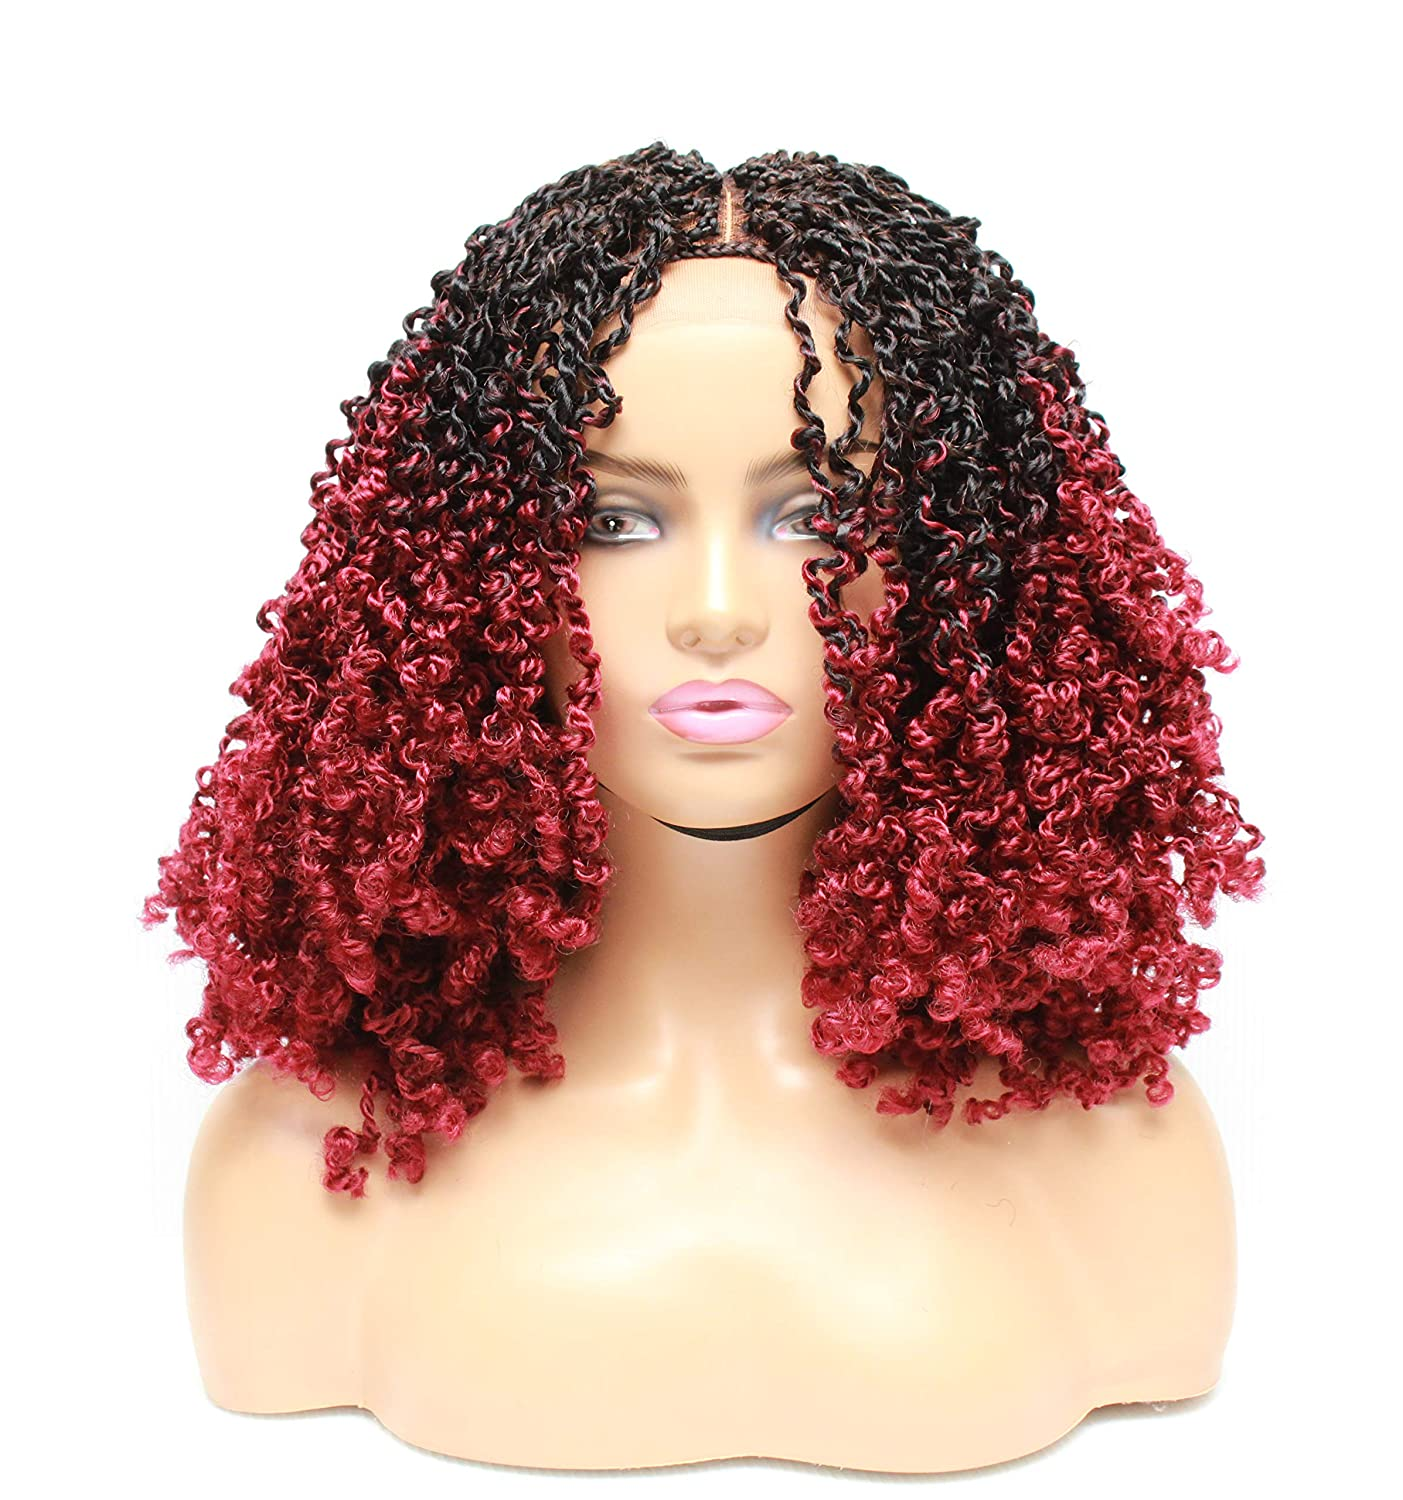 Spring twist hair- Super Gifts beauty product restock quality top Braided wigs for braided sale- lace wig front